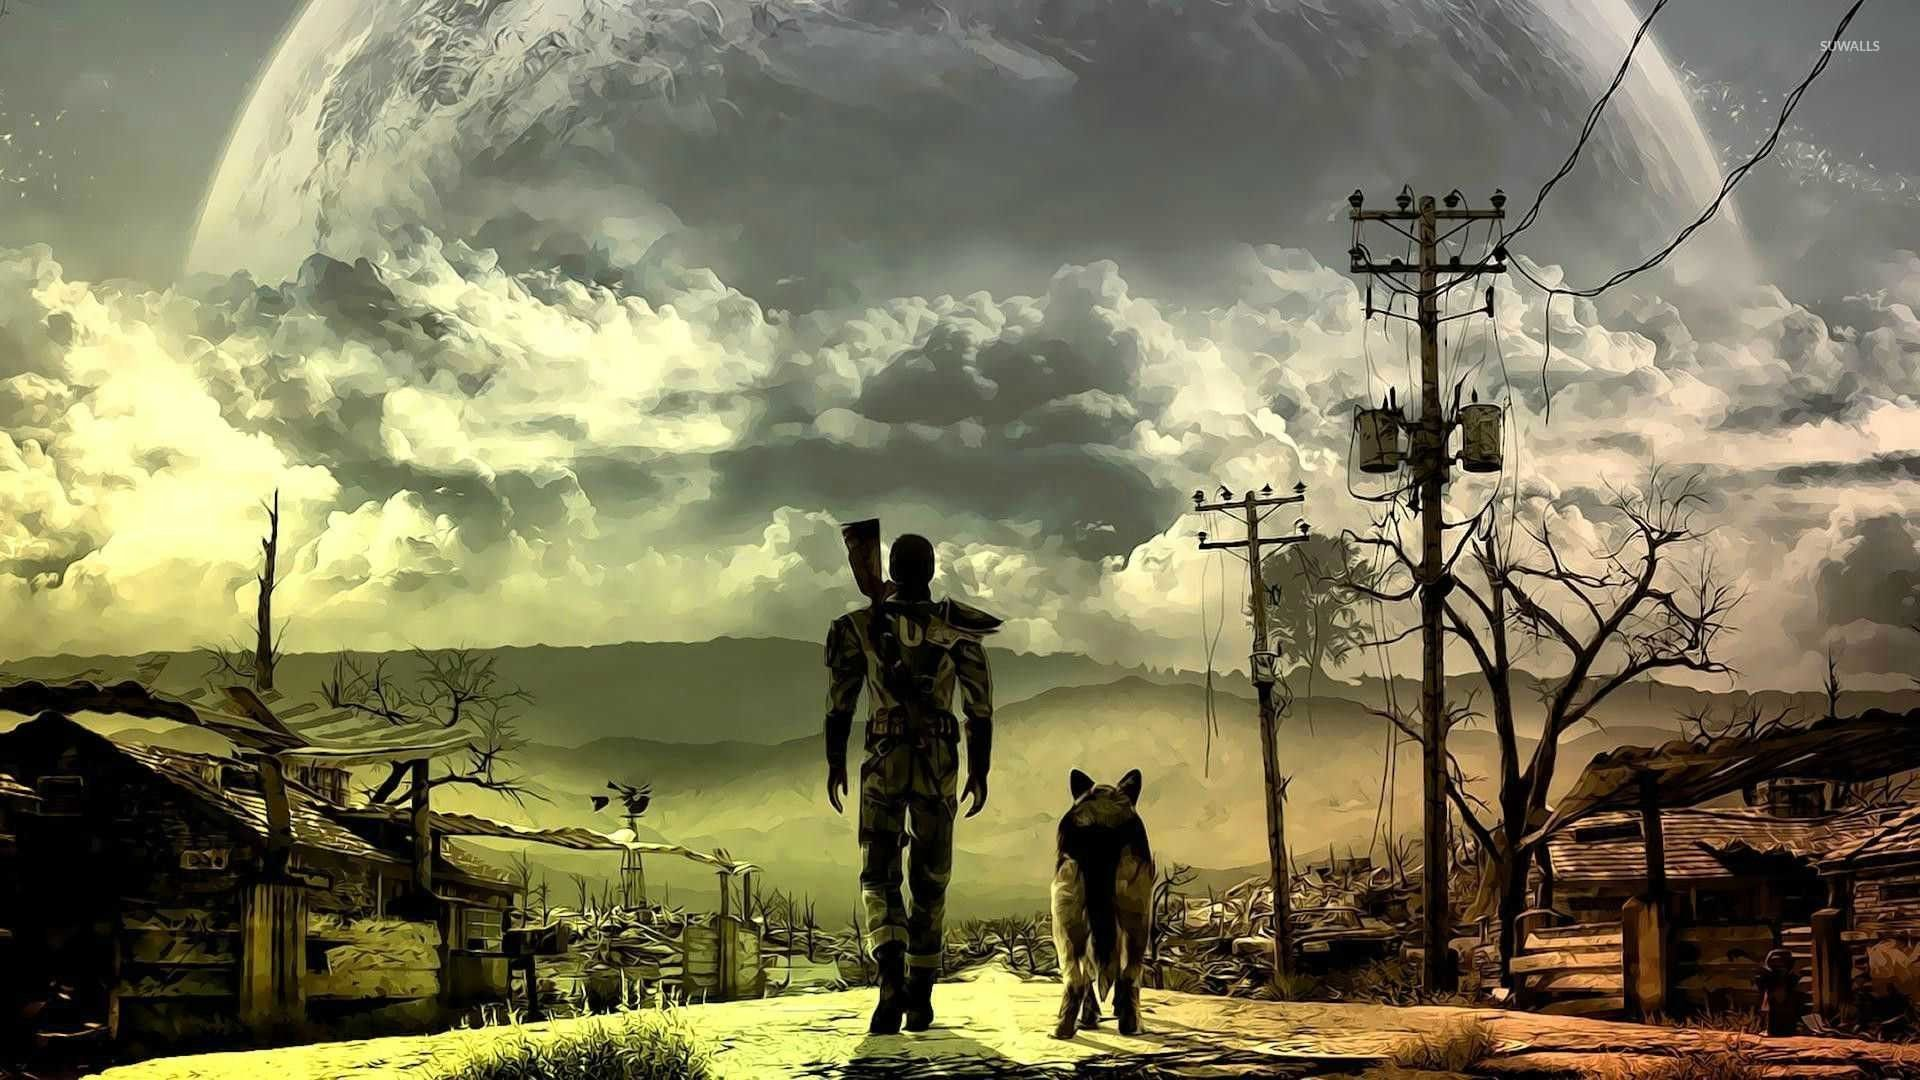 High Resolution Fallout Iphone Wallpaper Ipcwallpapers Fallout Wallpaper Fallout 3 Wallpaper Fallout Wallpapers